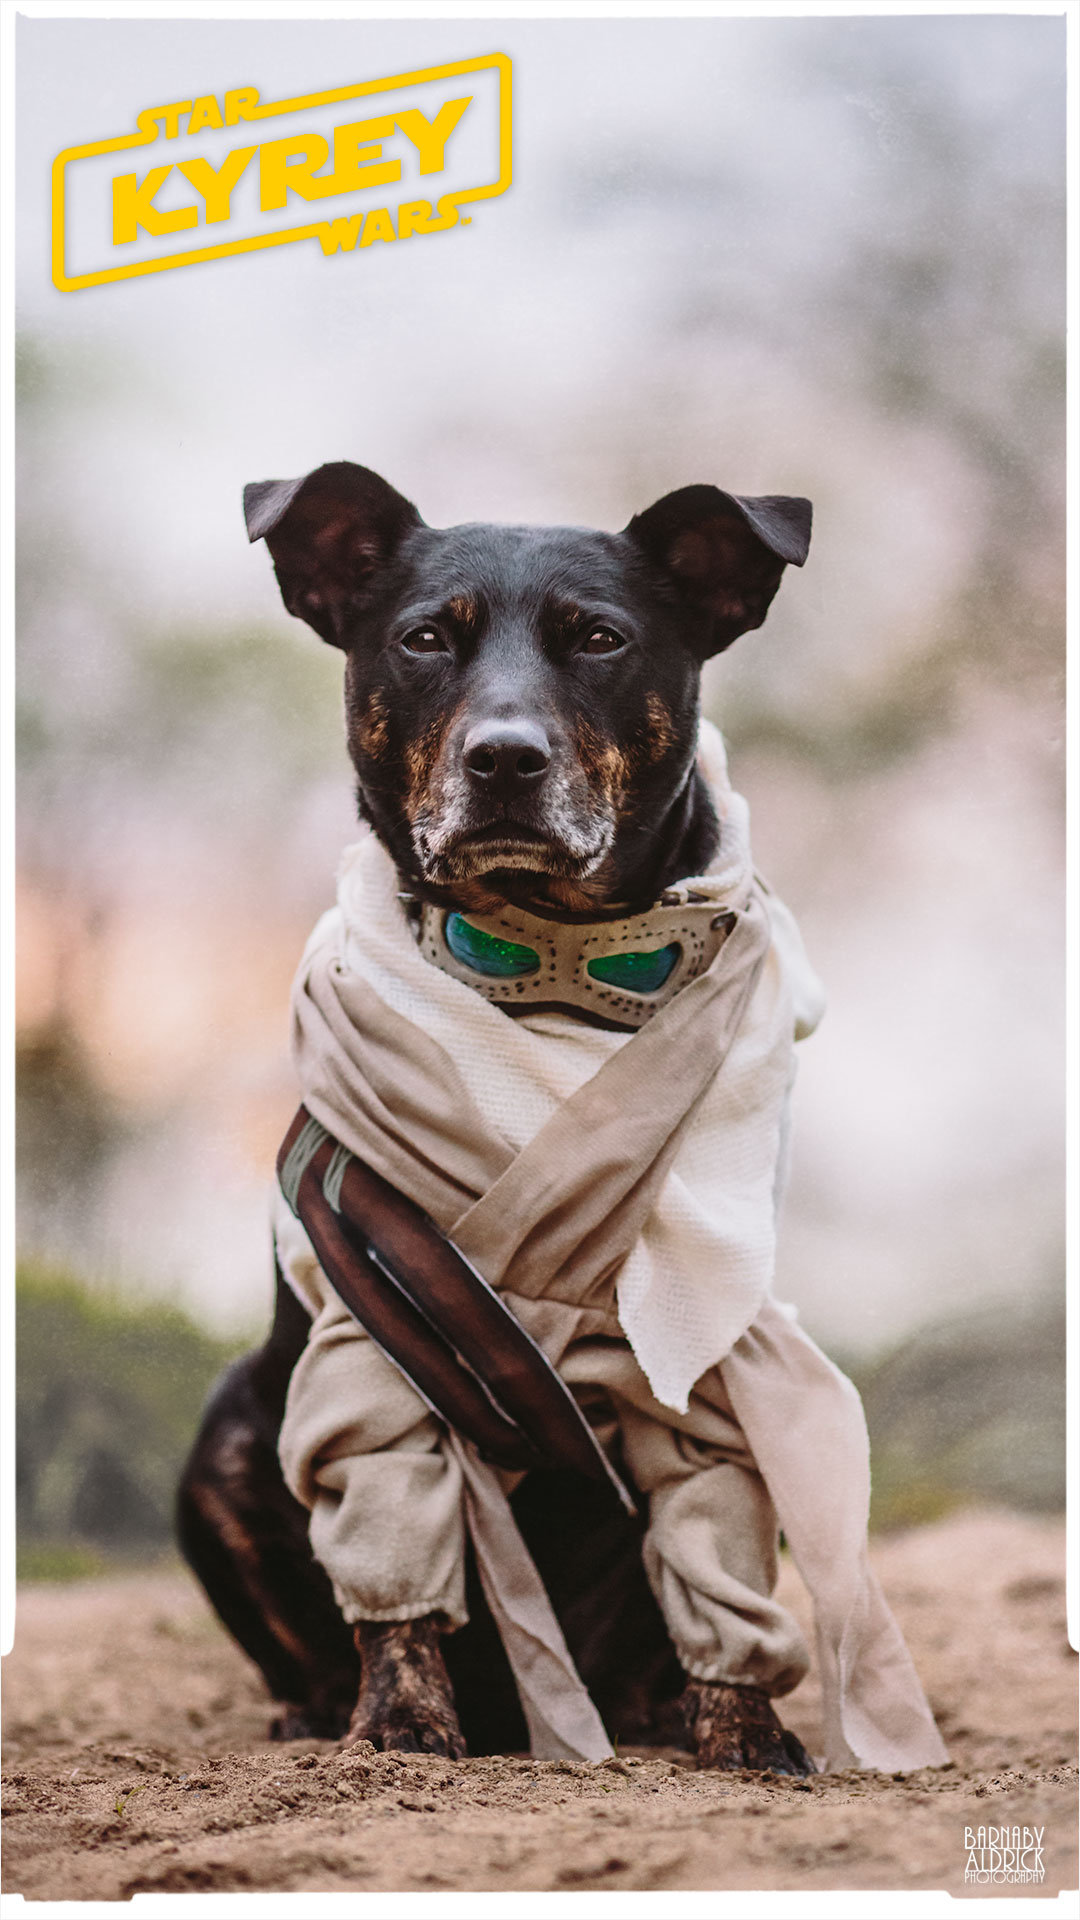 Star Wars Rey Pet Costume, Star Wars Dog idea, Star Wars Ray dog costume, Star wars Rey pet outfit, Star Wars Ray Pet Costume